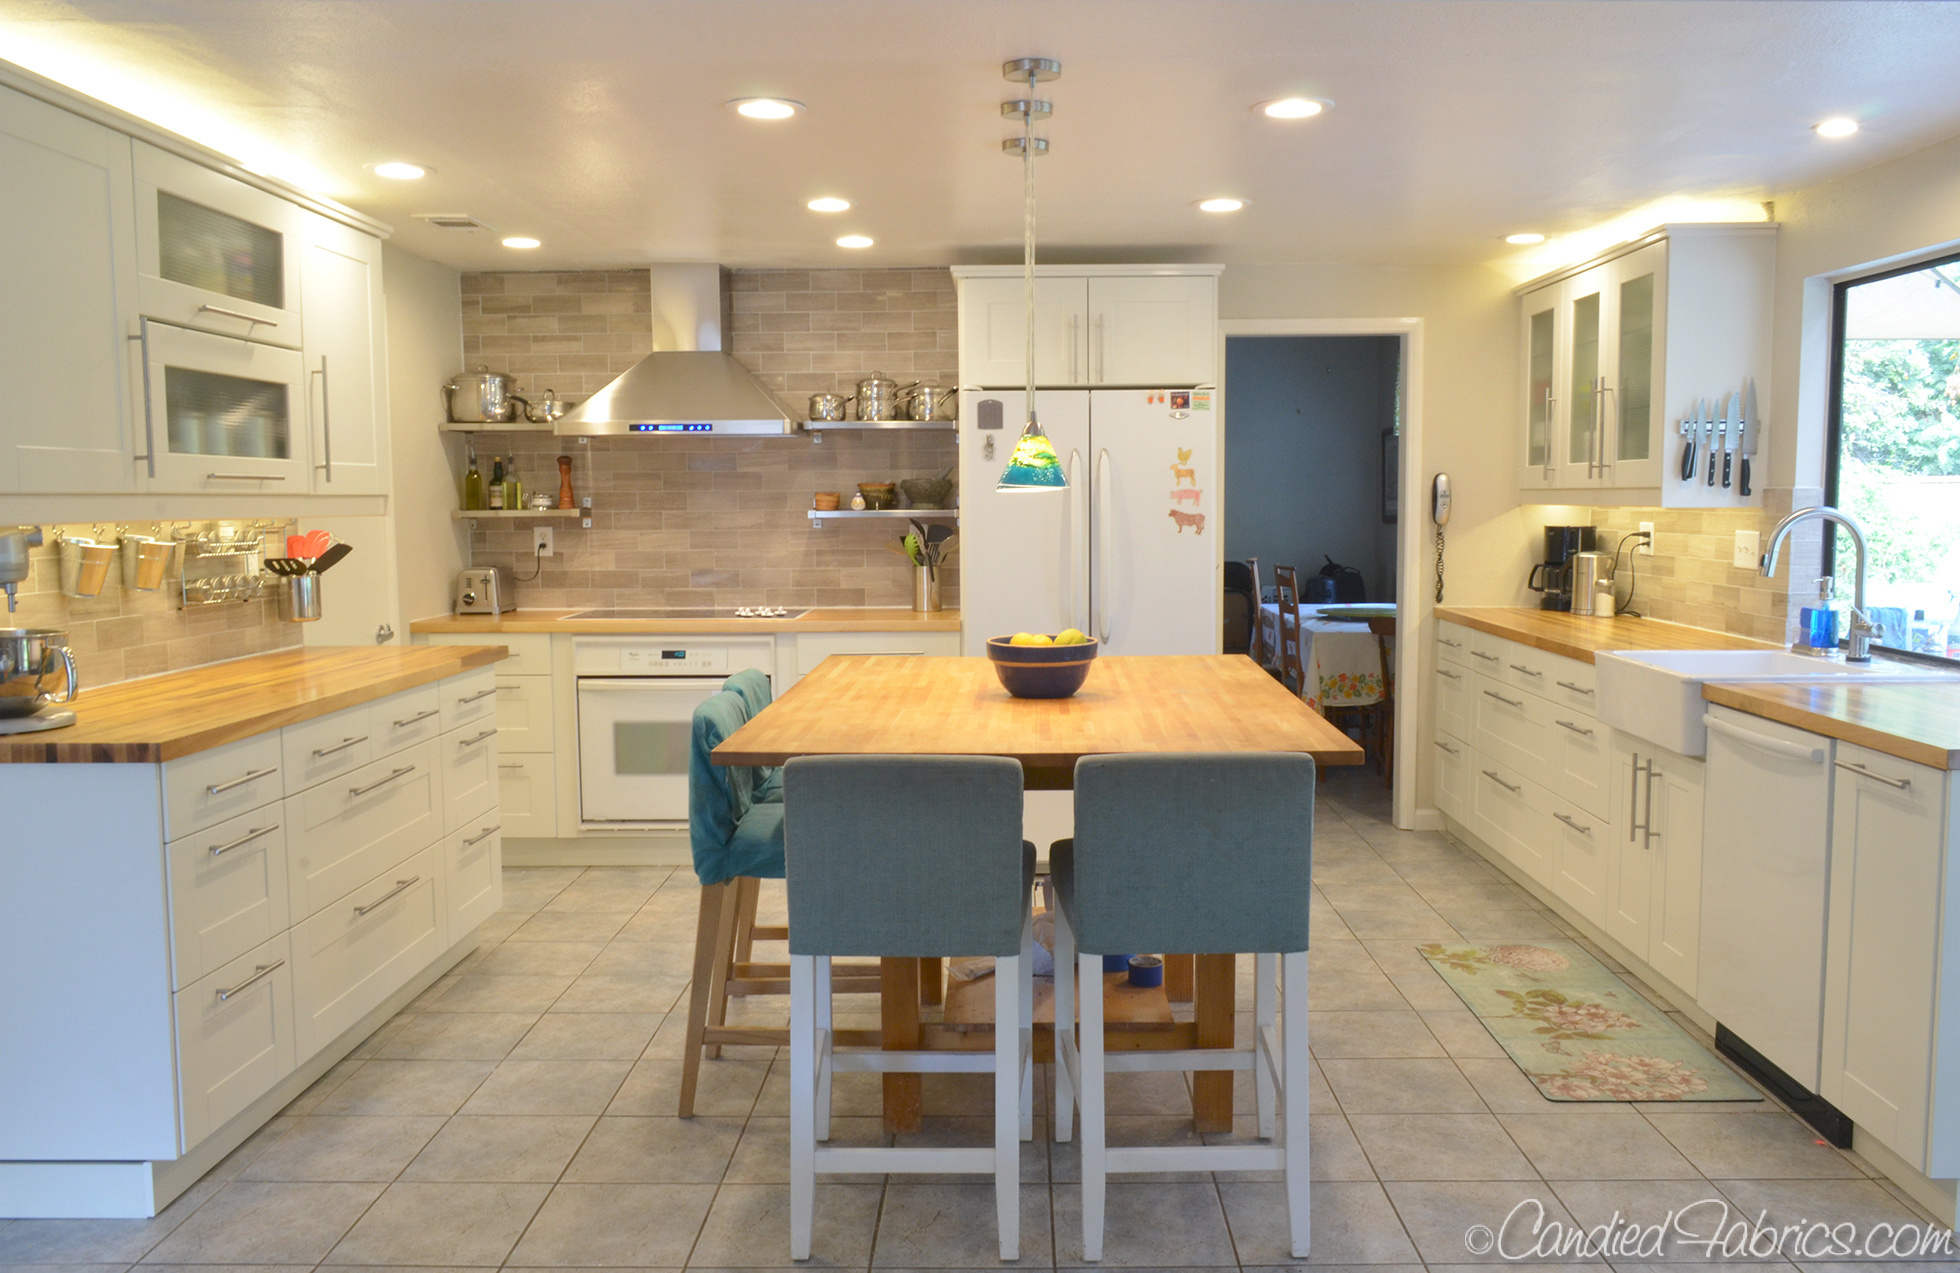 Install Recessed Lighting In A Kitchen: Kitchen Lighting Design Guidelines